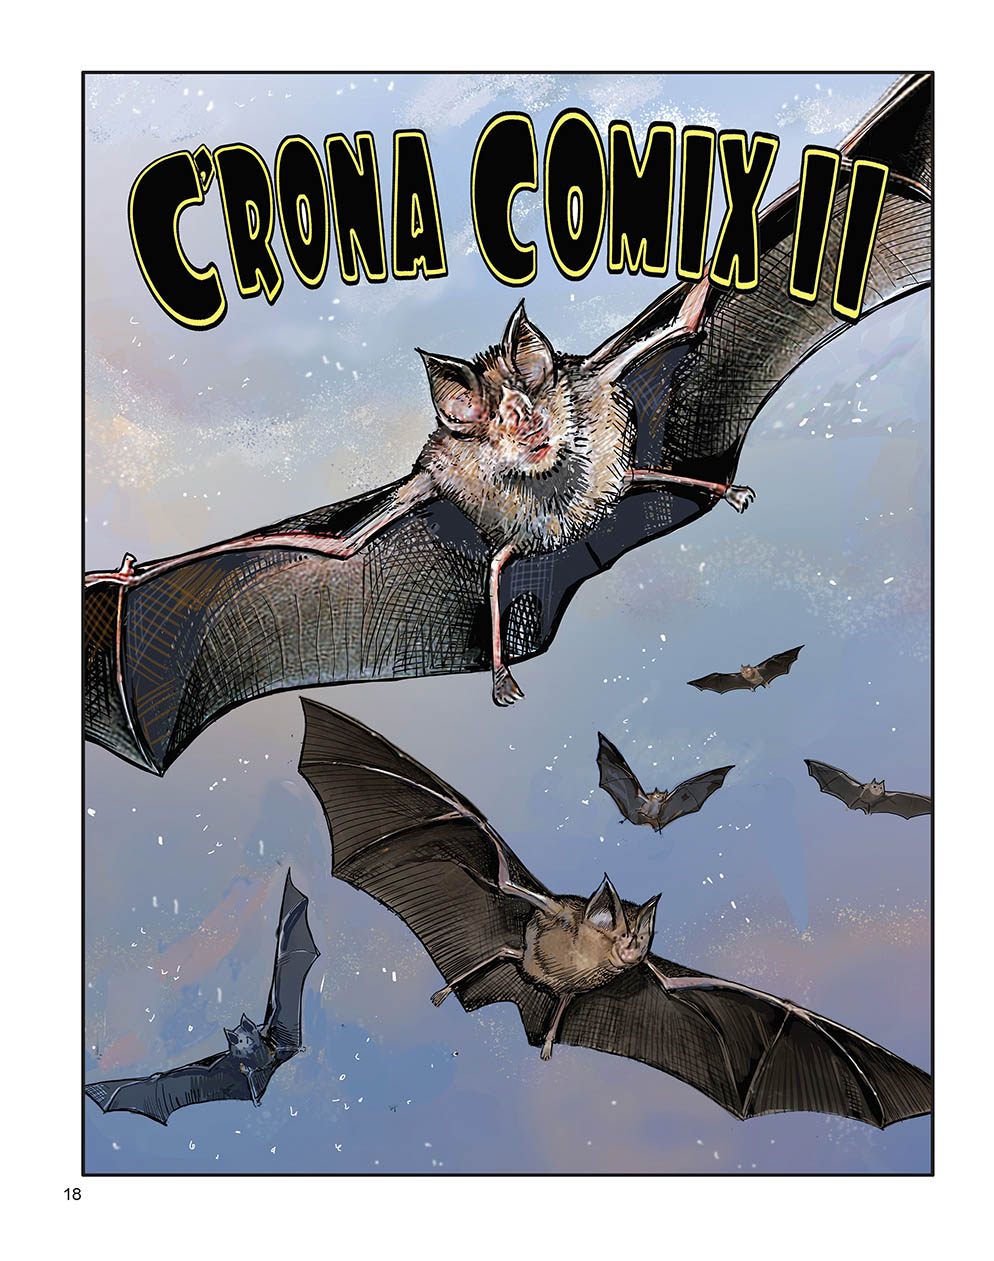 """Color illustration of several bats flying through the dusk with the title """"C'RONA COMIX II"""" at the top of the page in block lettering."""